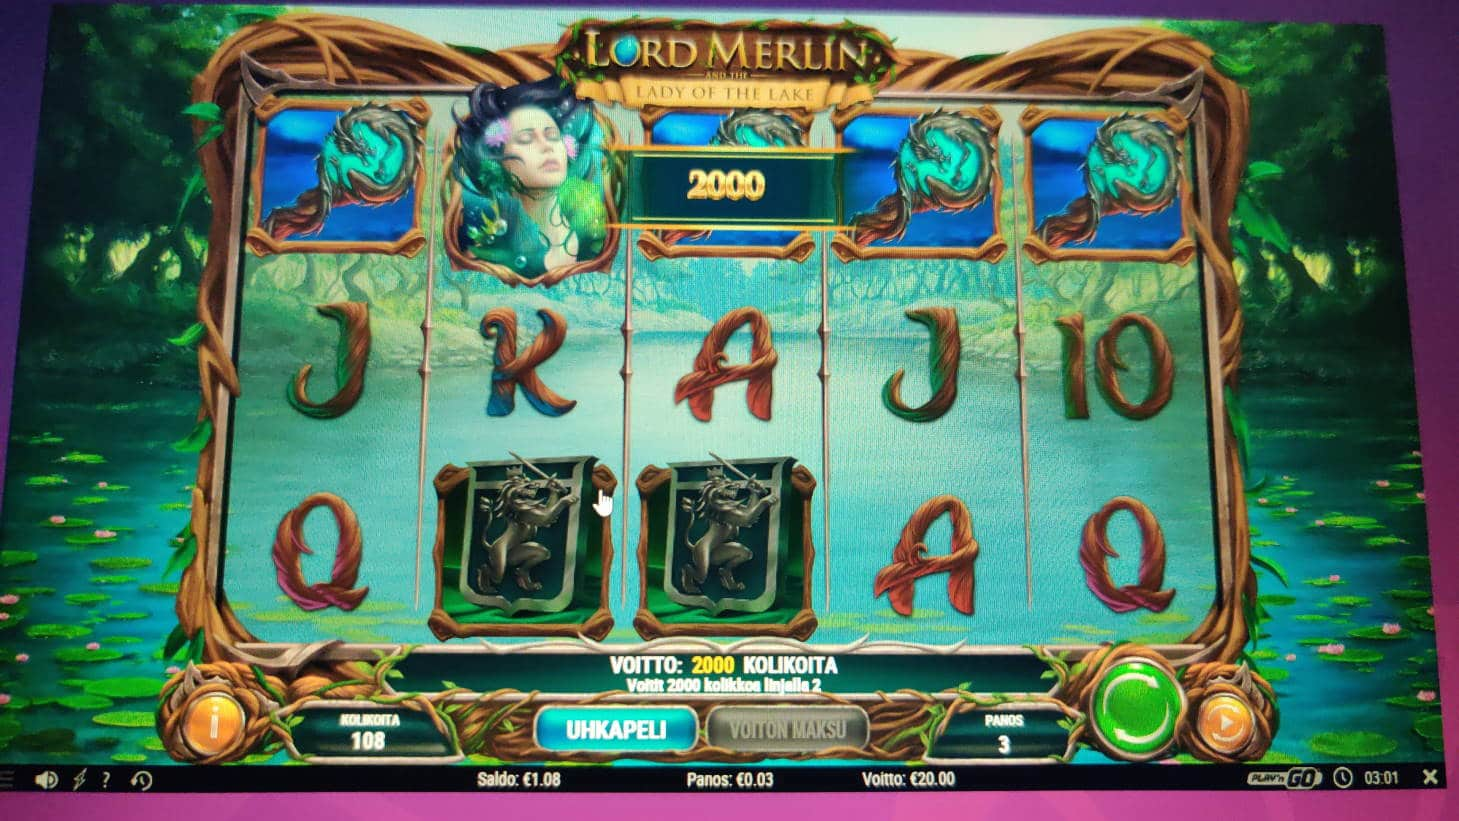 Lord Merlin Casino win picture by jiipee 1.2.2021 20e 667X